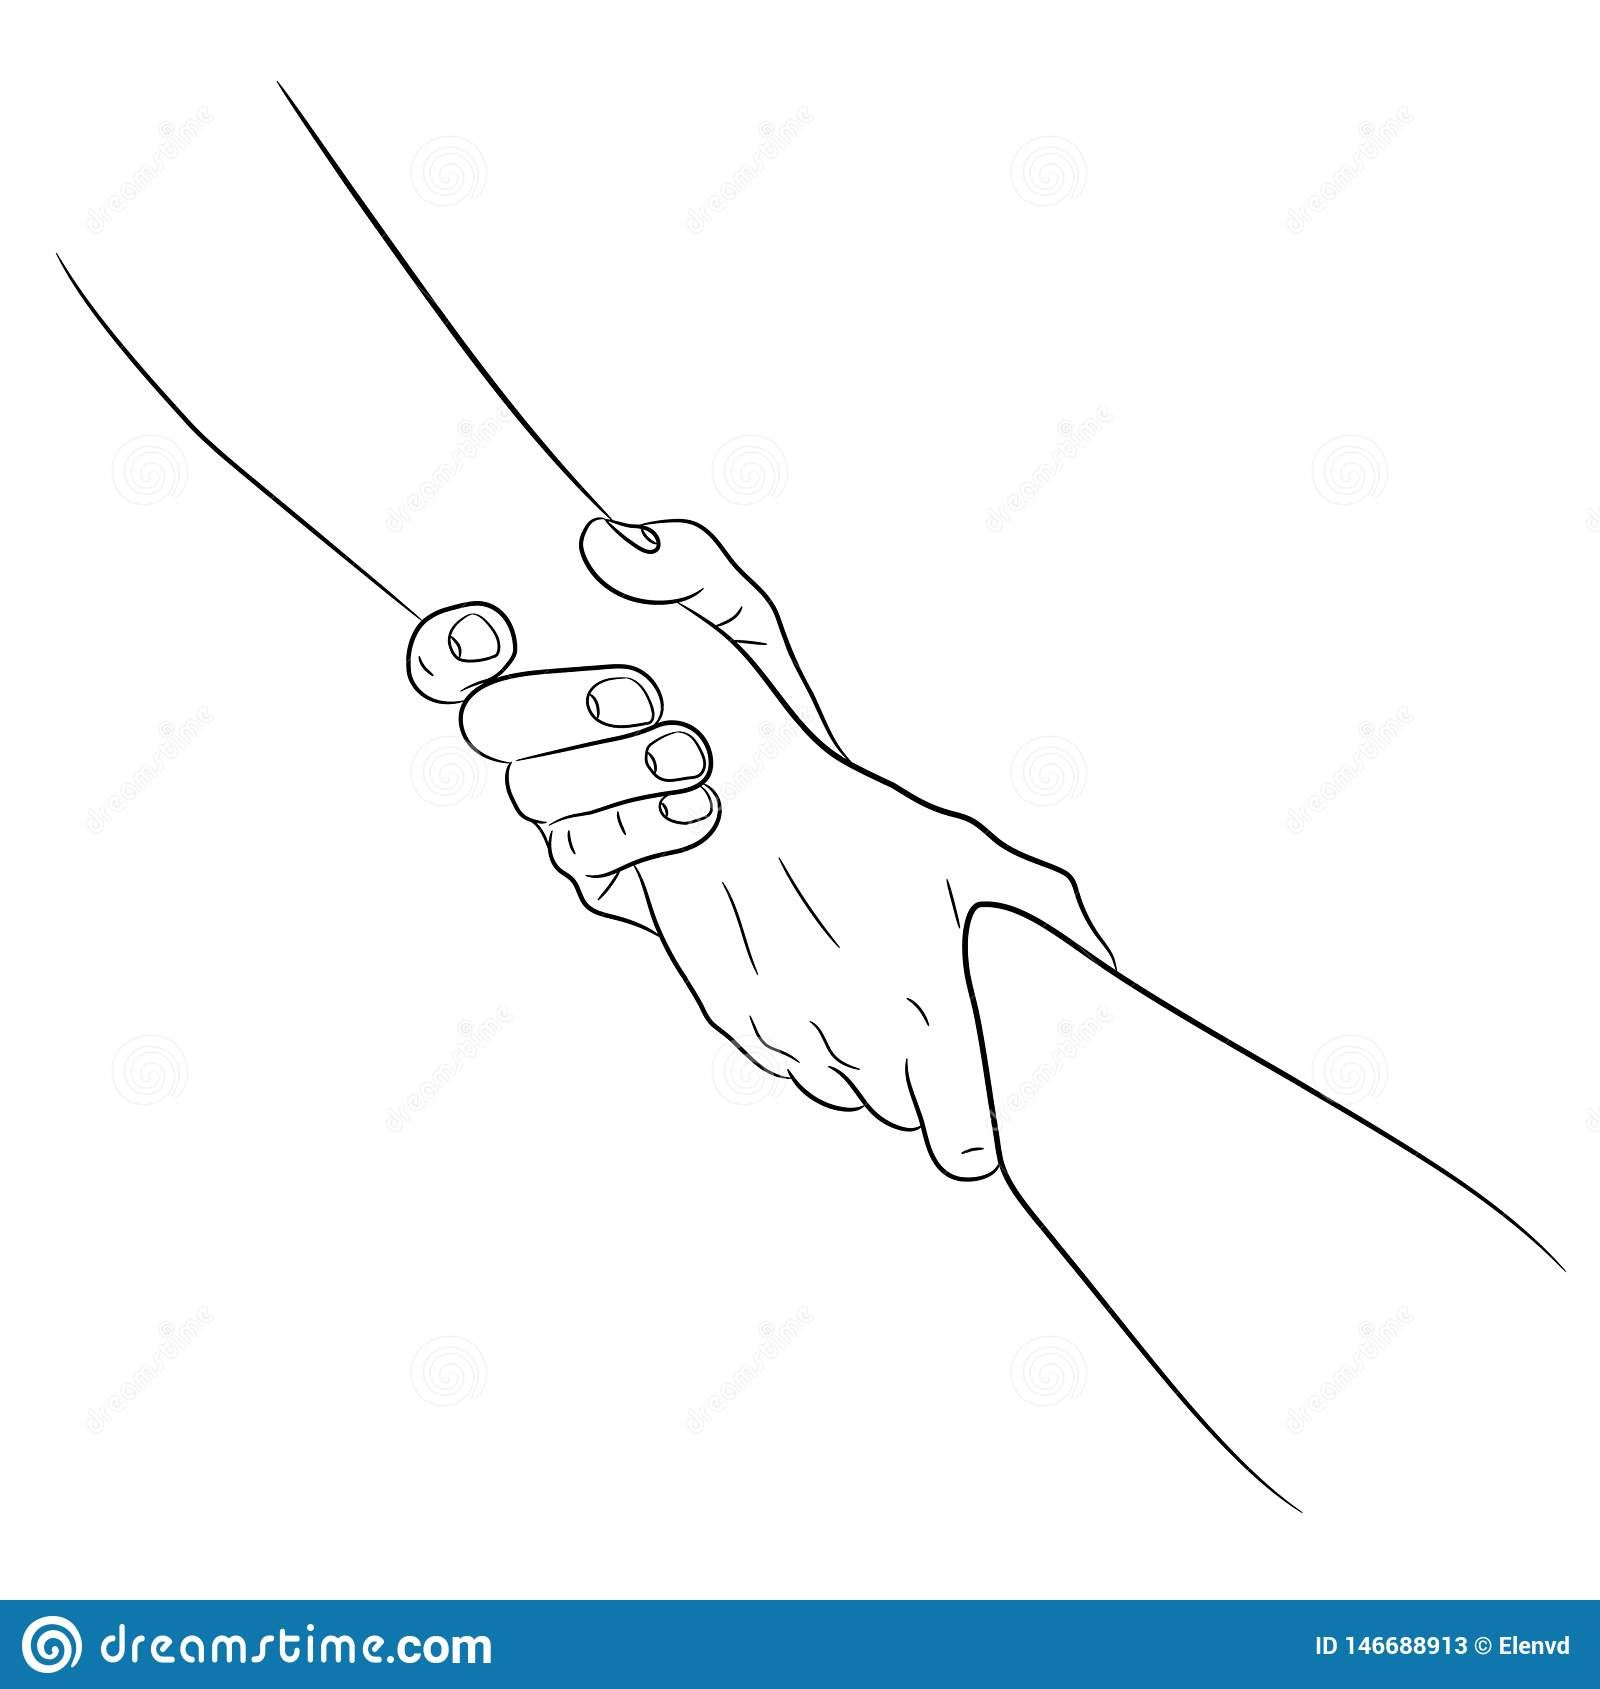 Illustration About Two Hands Taking Each Other Helping Hand Concept Pull Drag From The Contour Black Brush Line How To Draw Hands Two Hands Tattoo Hand Doodles Get inspired for two hands holding each